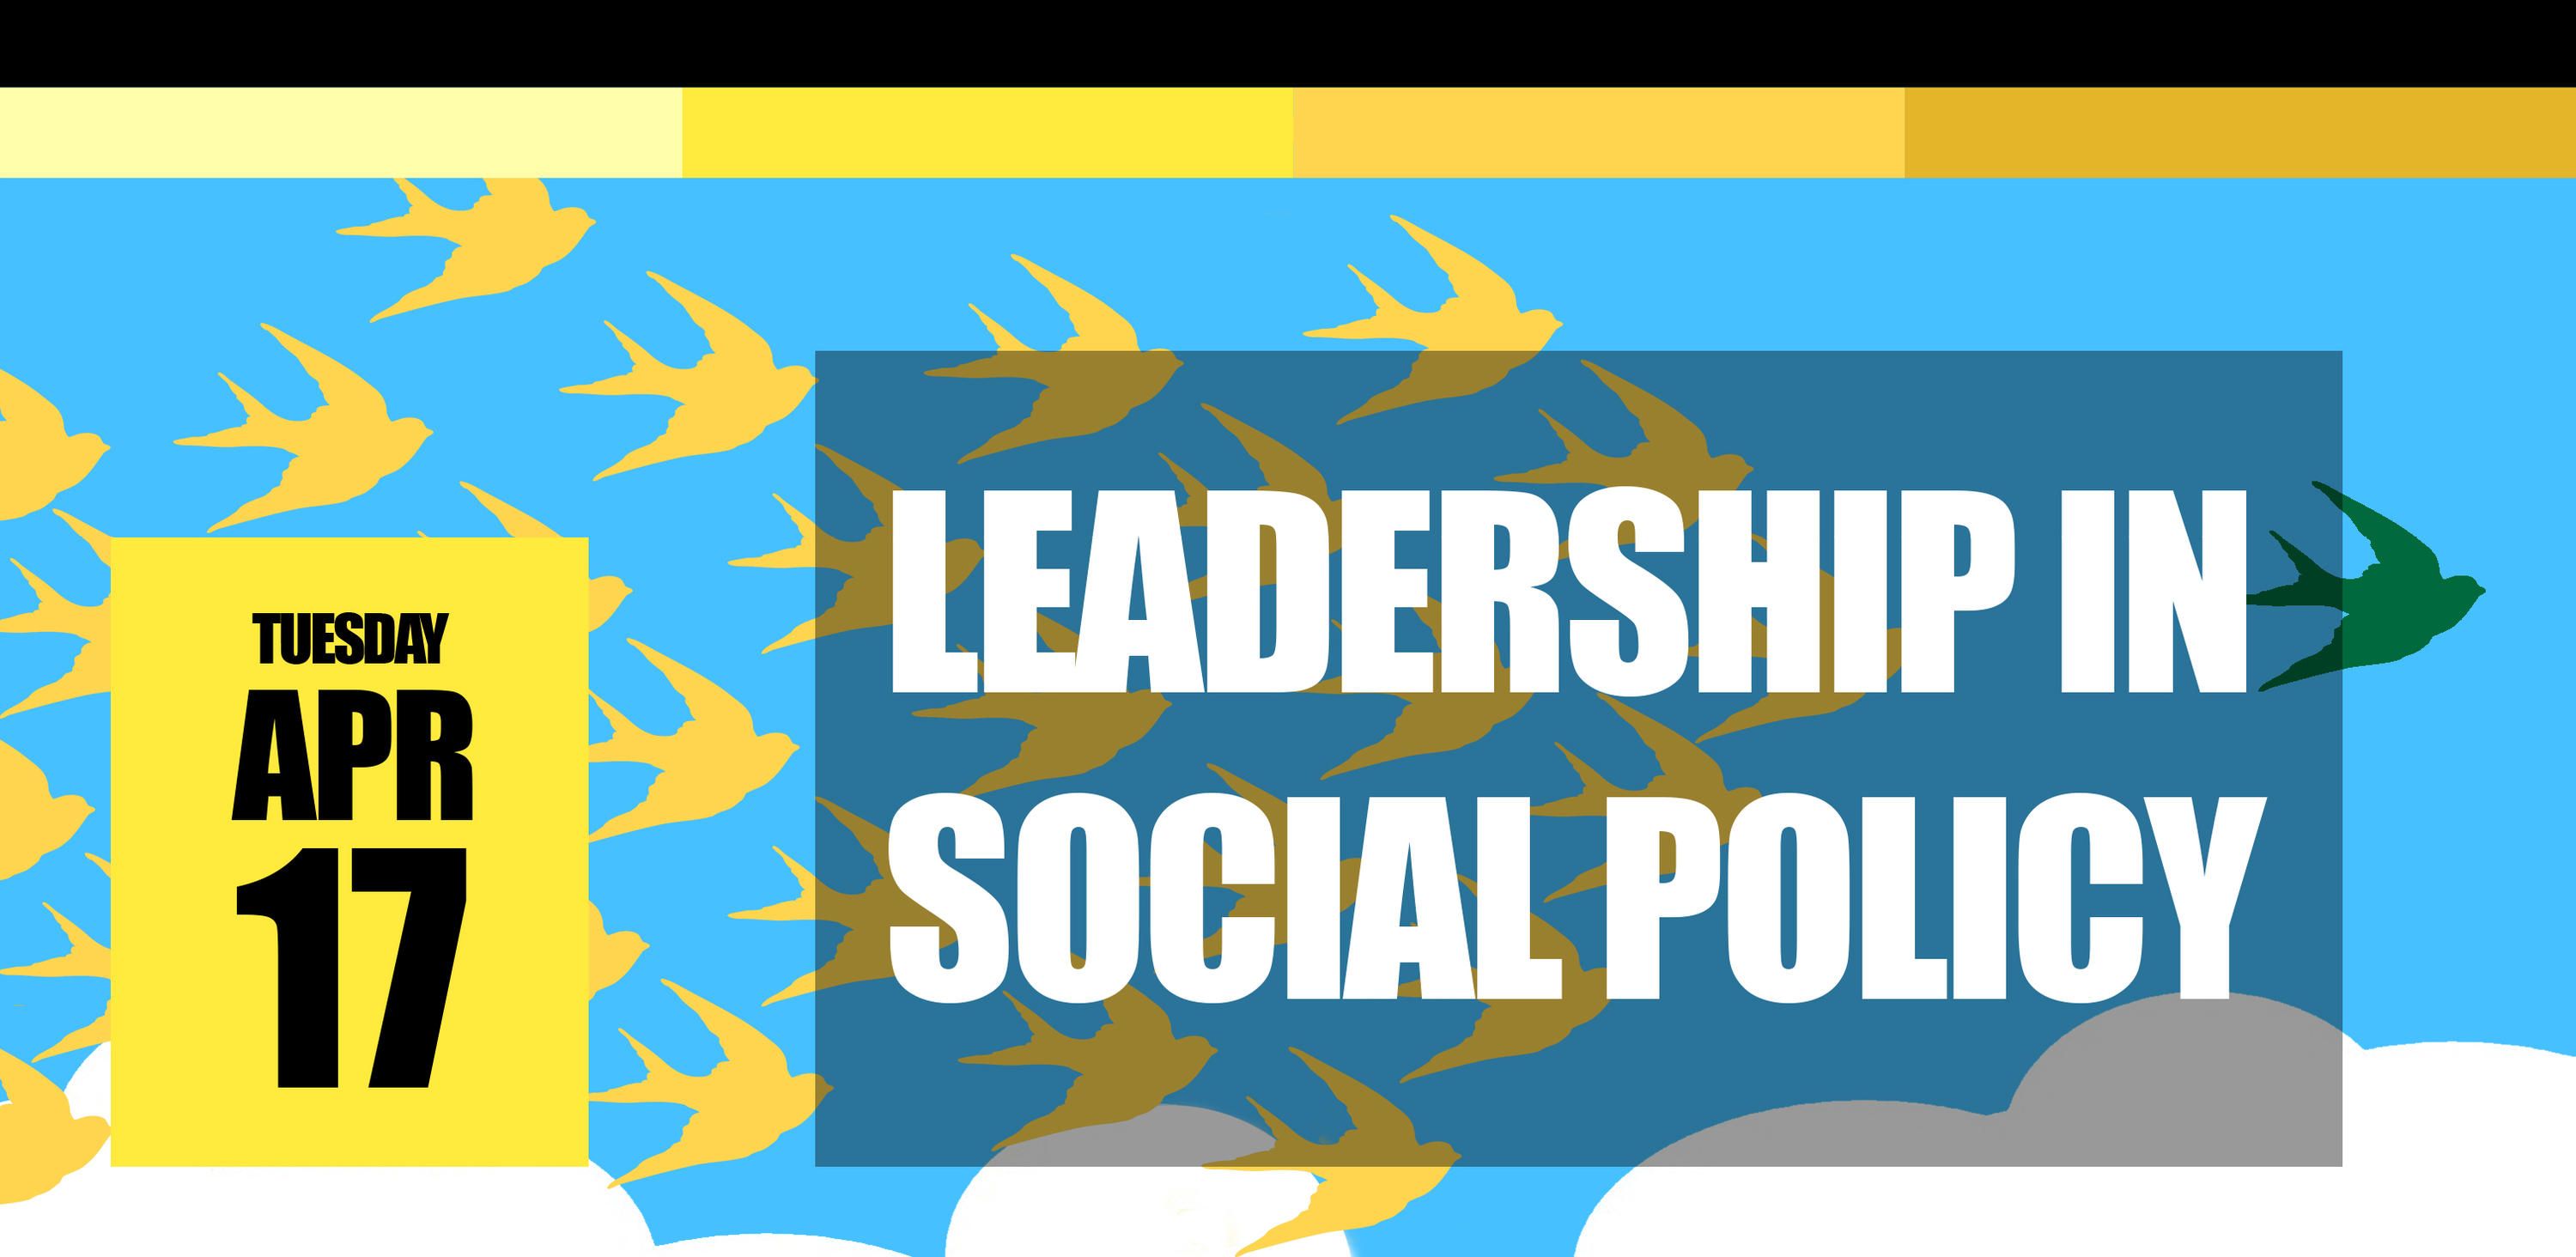 Leadership in Social Policy, Tuesday, April 17, 2018